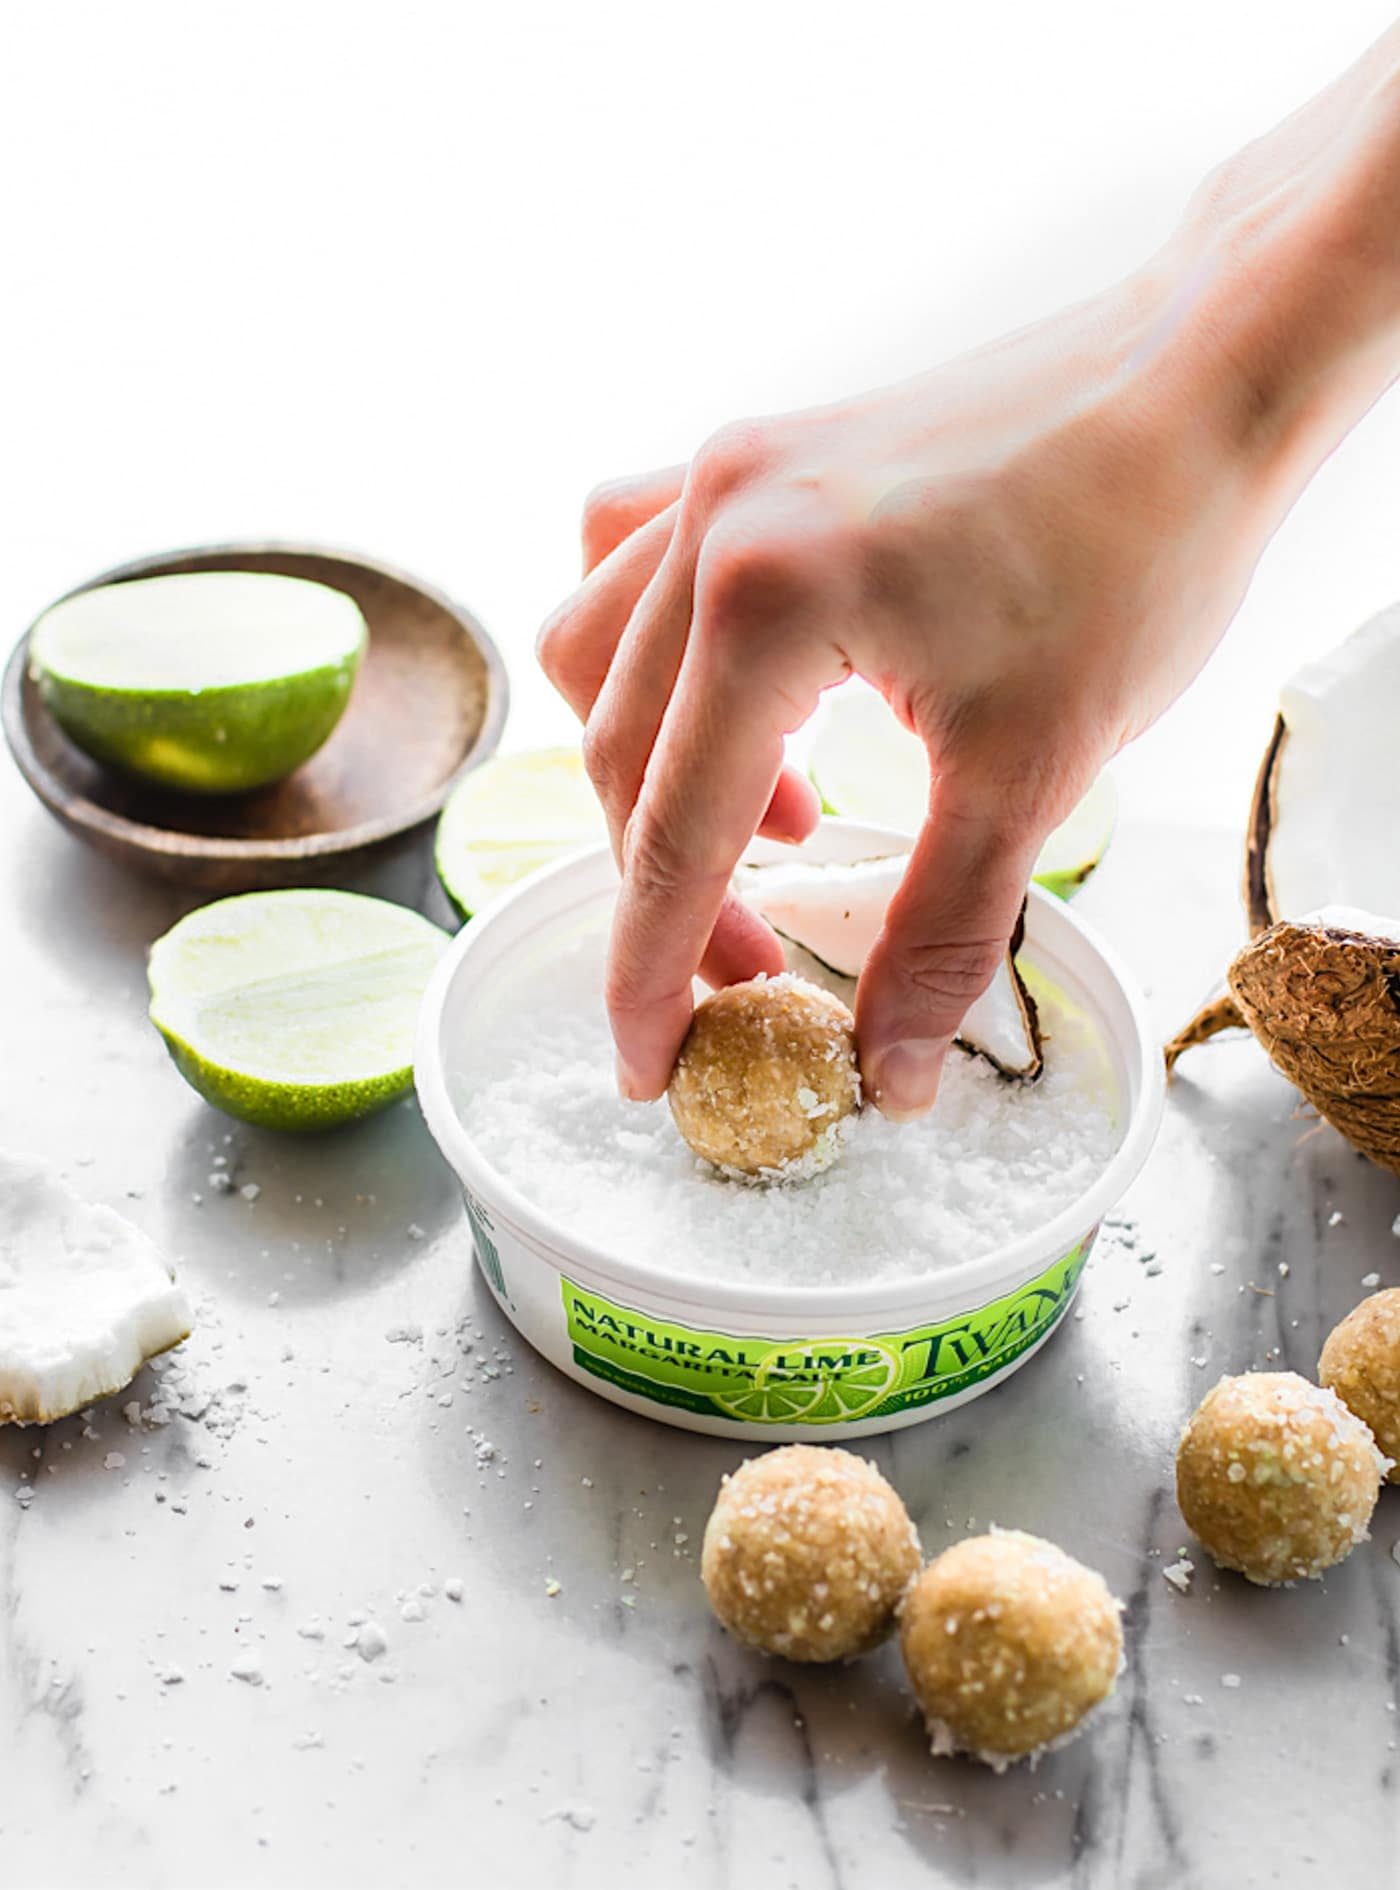 No Bake Coconut Margarita Bites! Super simple no bake coconut margarita treats in dessert bite form! These bites are naturally gluten free, paleo friendly, and vegan! Bites that actually taste like a frozen margarita with natural lime and coconut flavors. #vegan #paleo #nobake